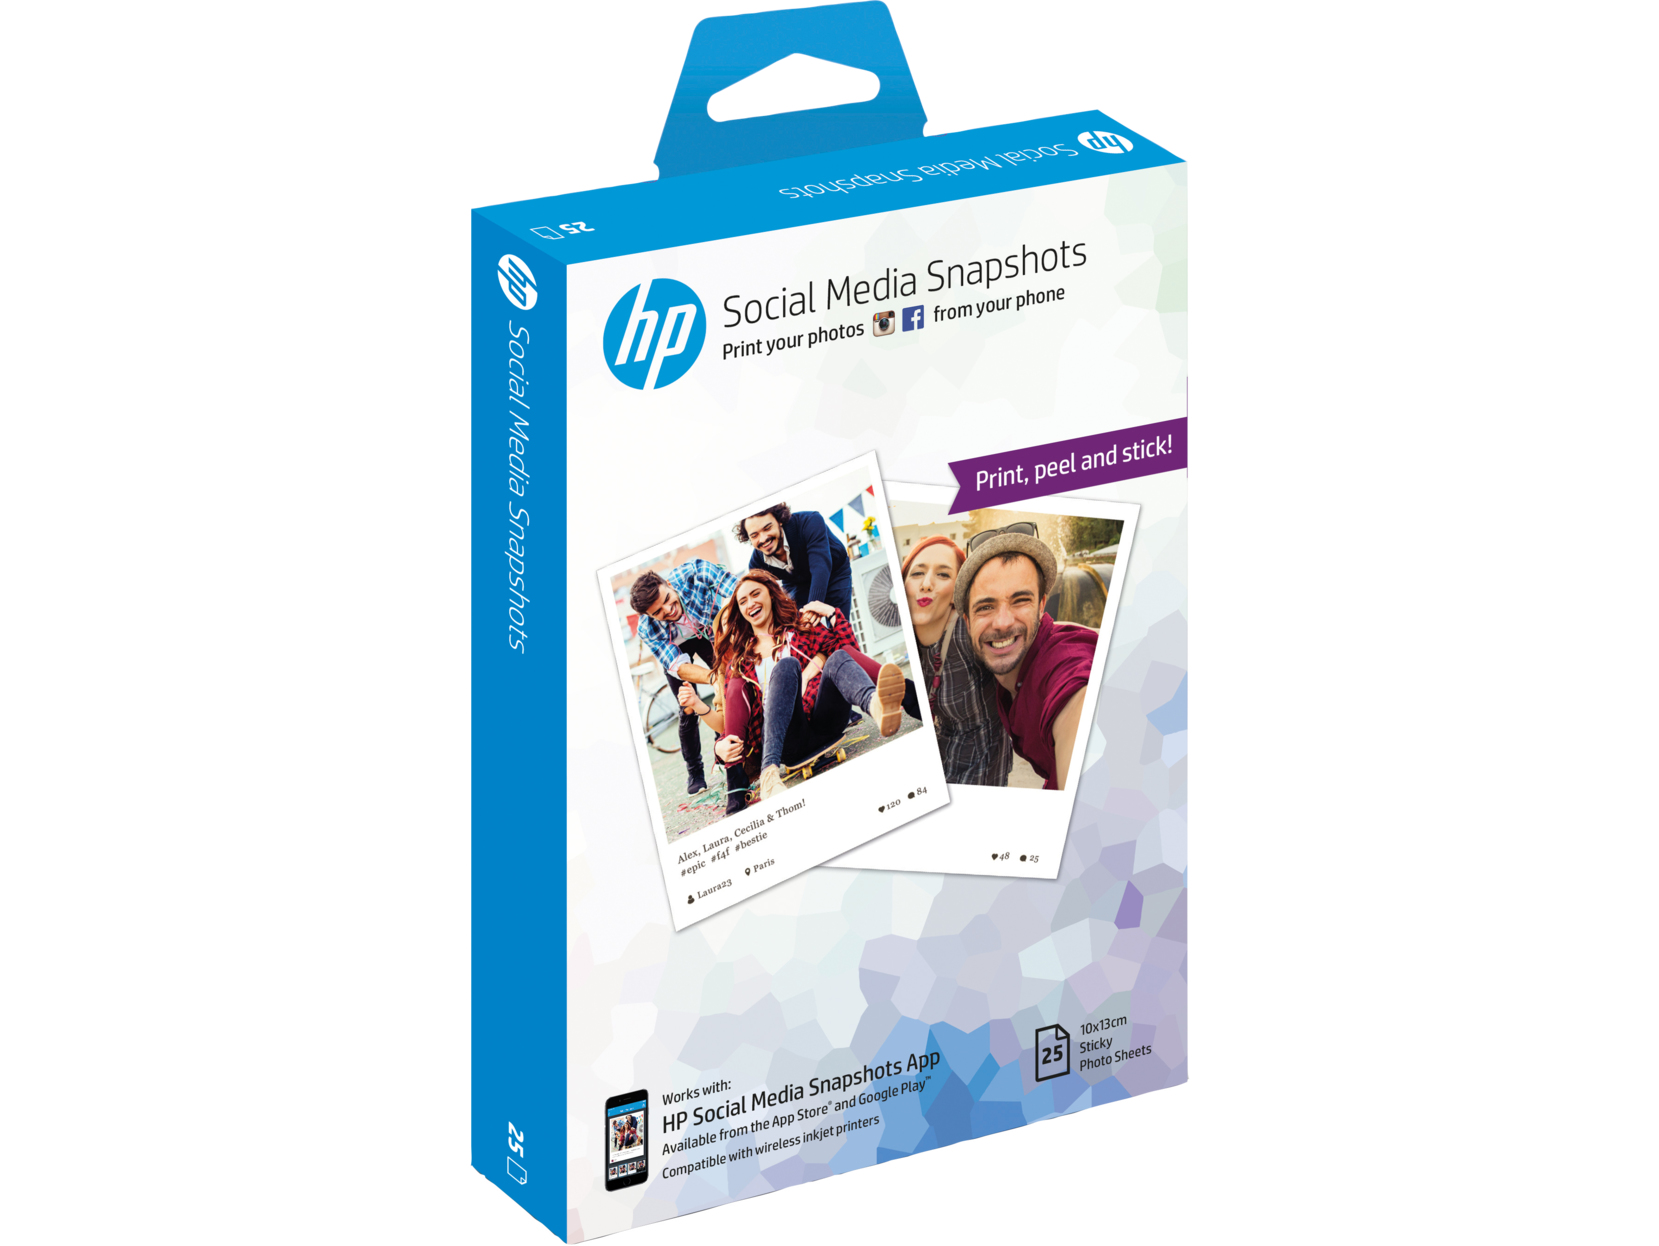 HP Social Media Snapshots Removable Sticky Photo Paper-25 sht/10 x 13 cm